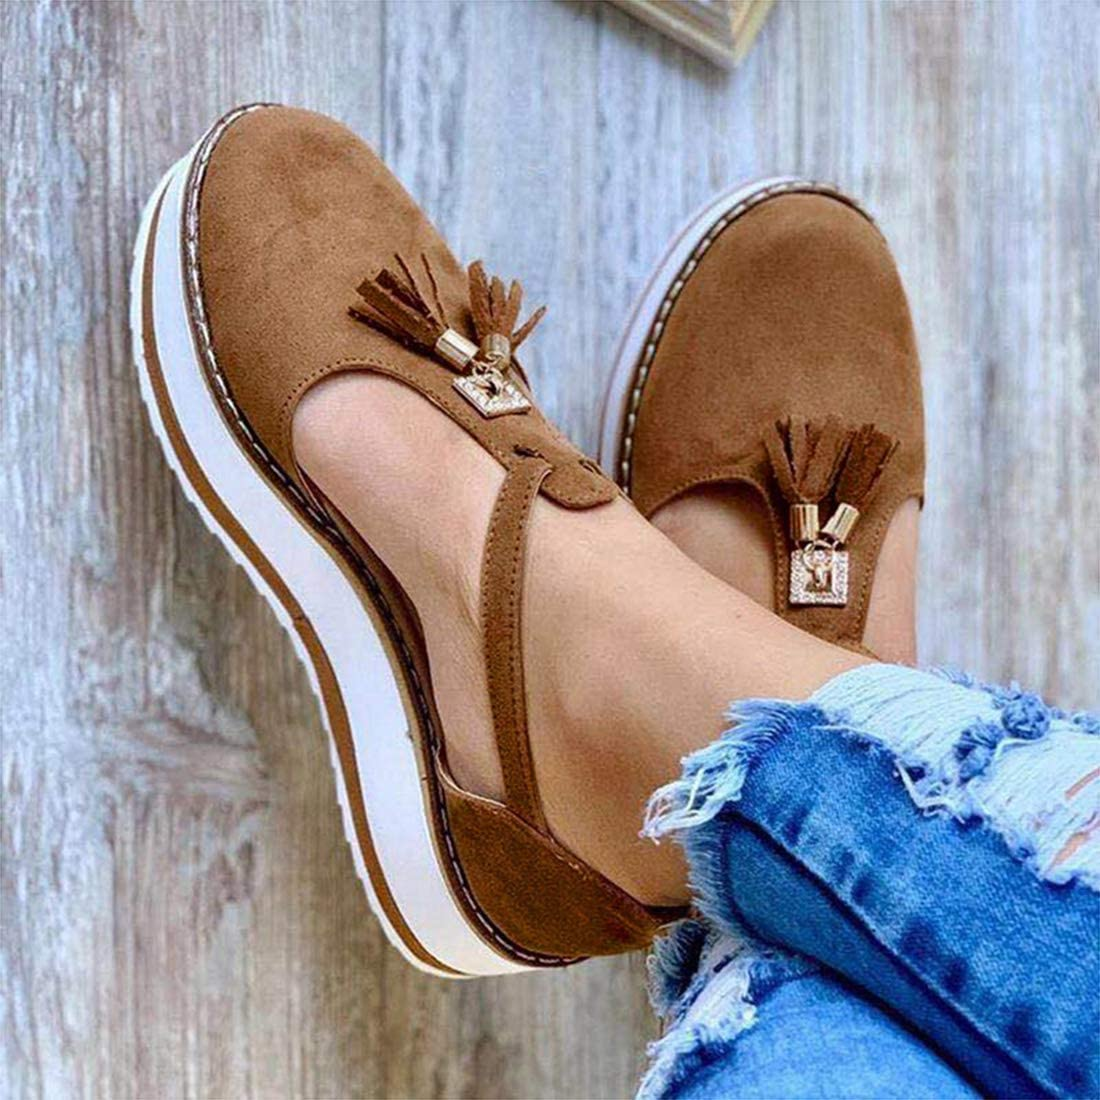 FMOGE Summer Sandals for Women Tassel At the price of Now on sale surprise Closed Toe Leather Sandal